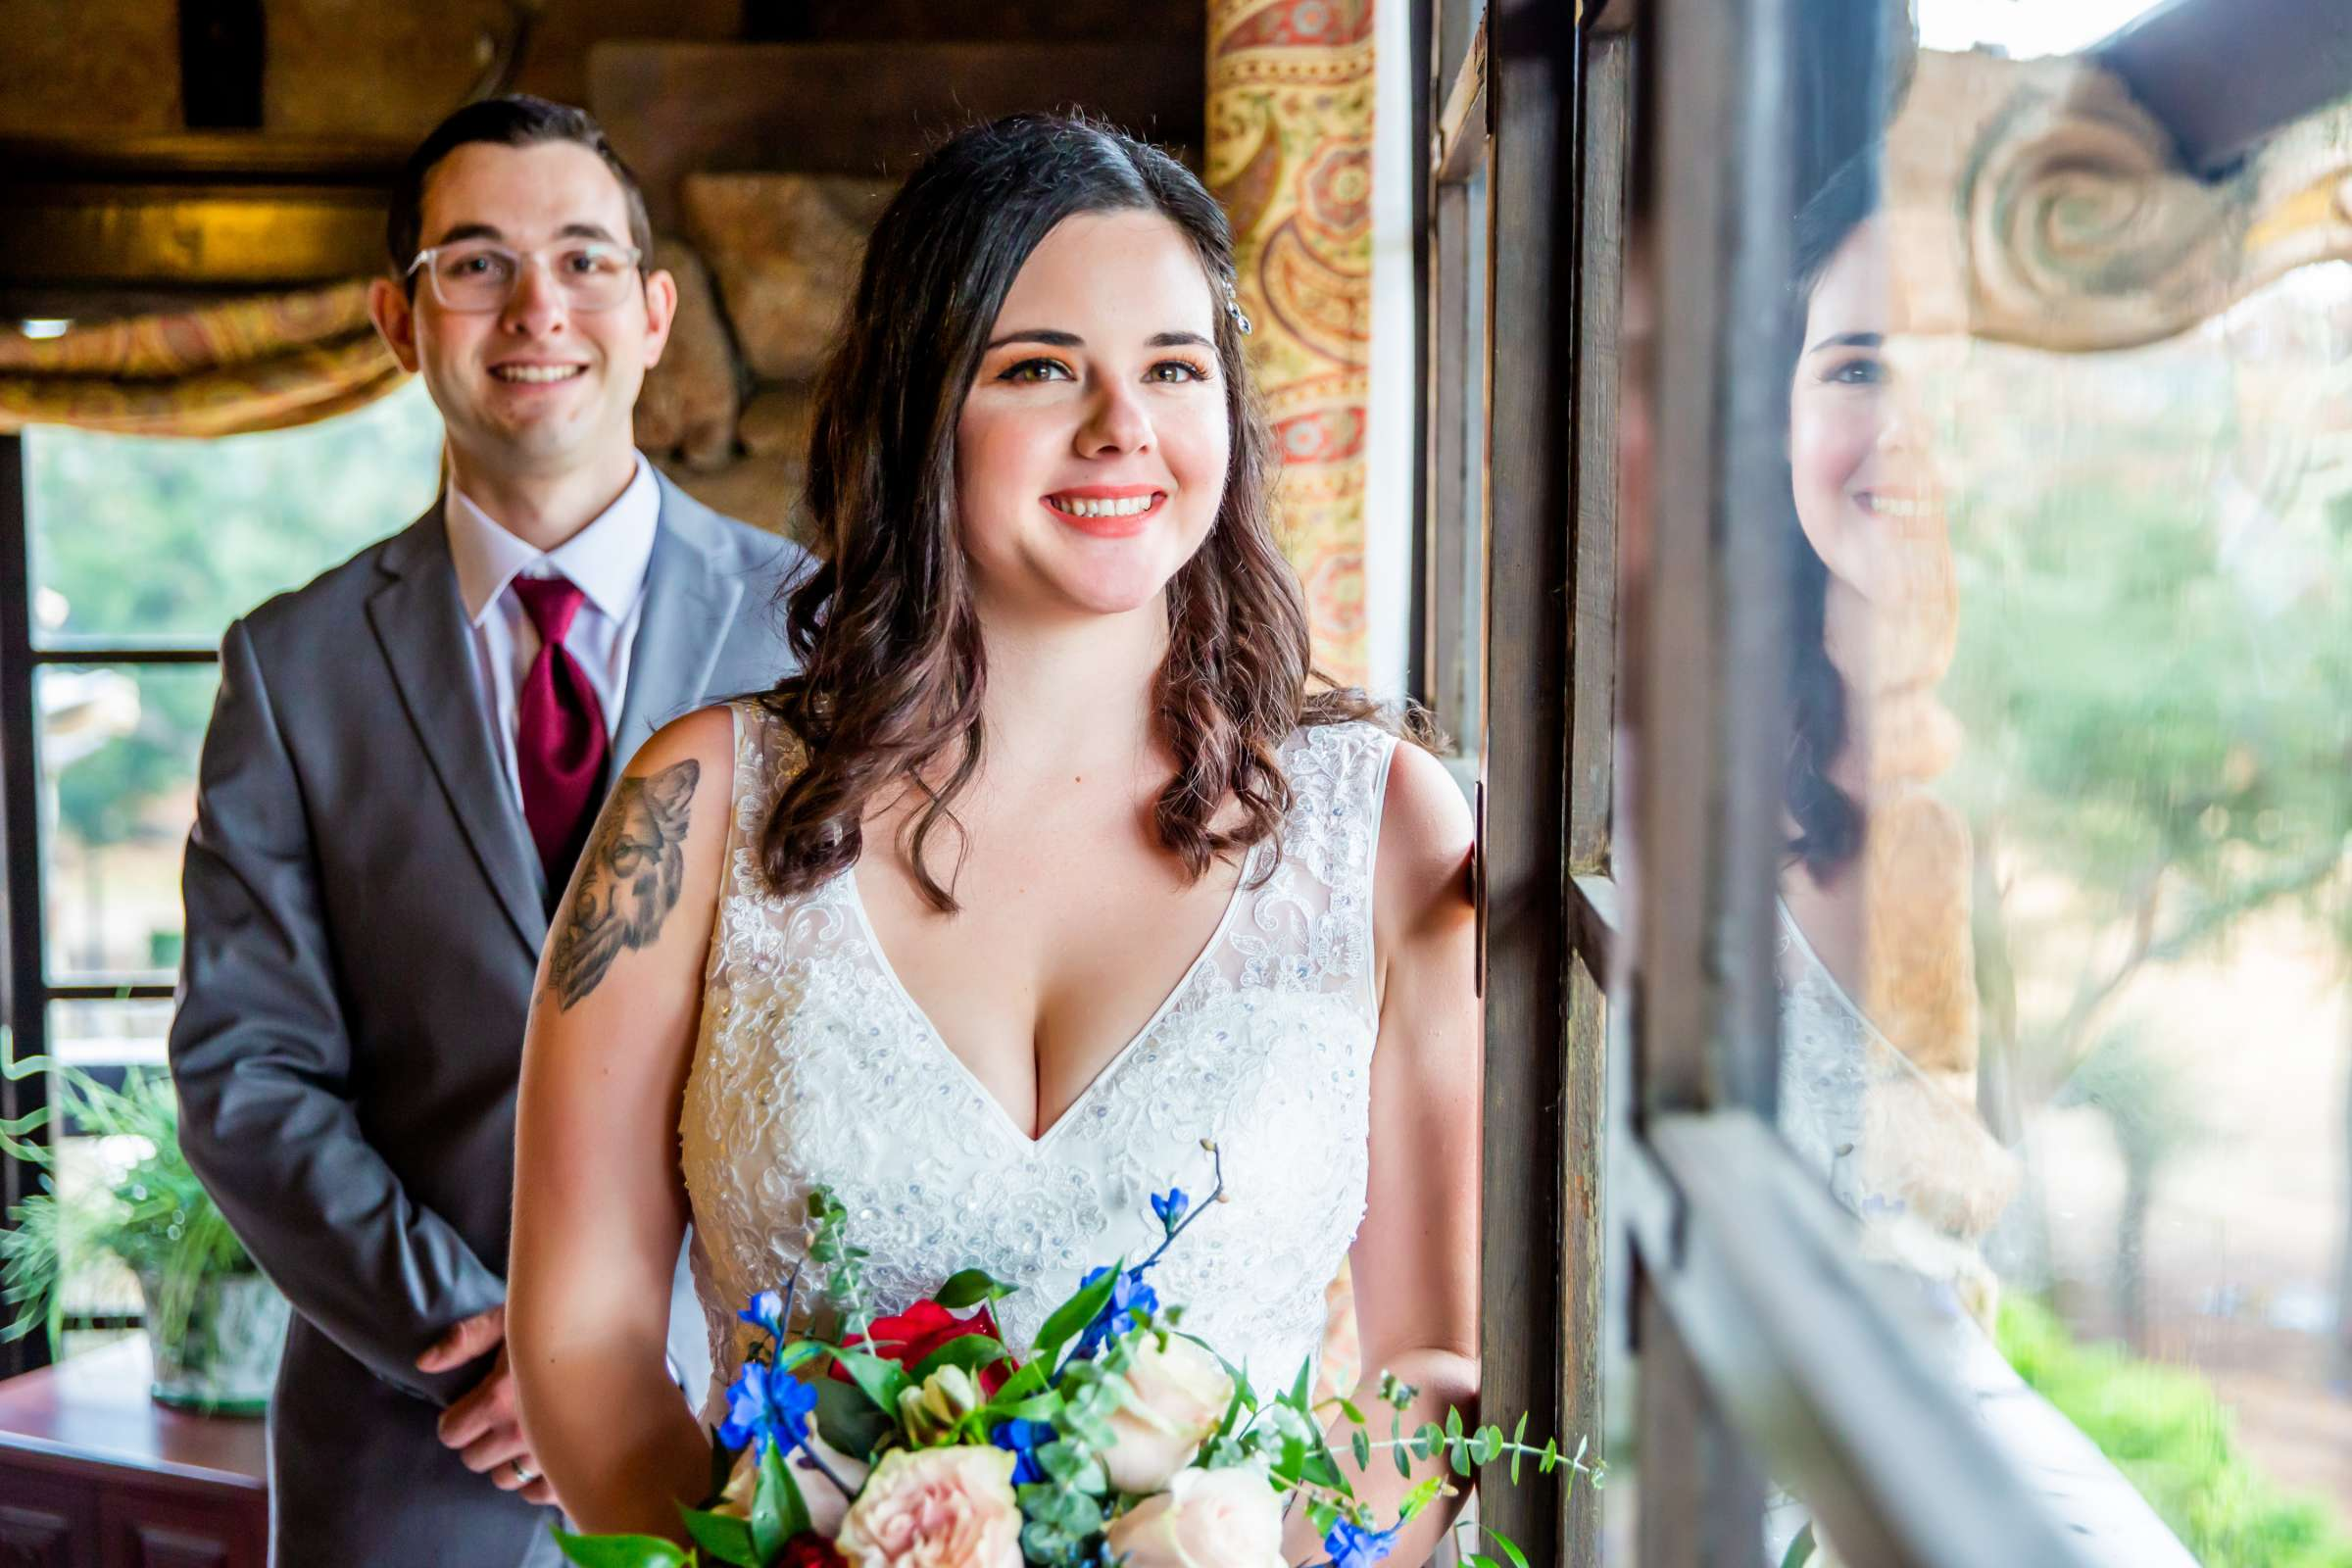 Mt Woodson Castle Wedding, Valerie and Ian Wedding Photo #23 by True Photography